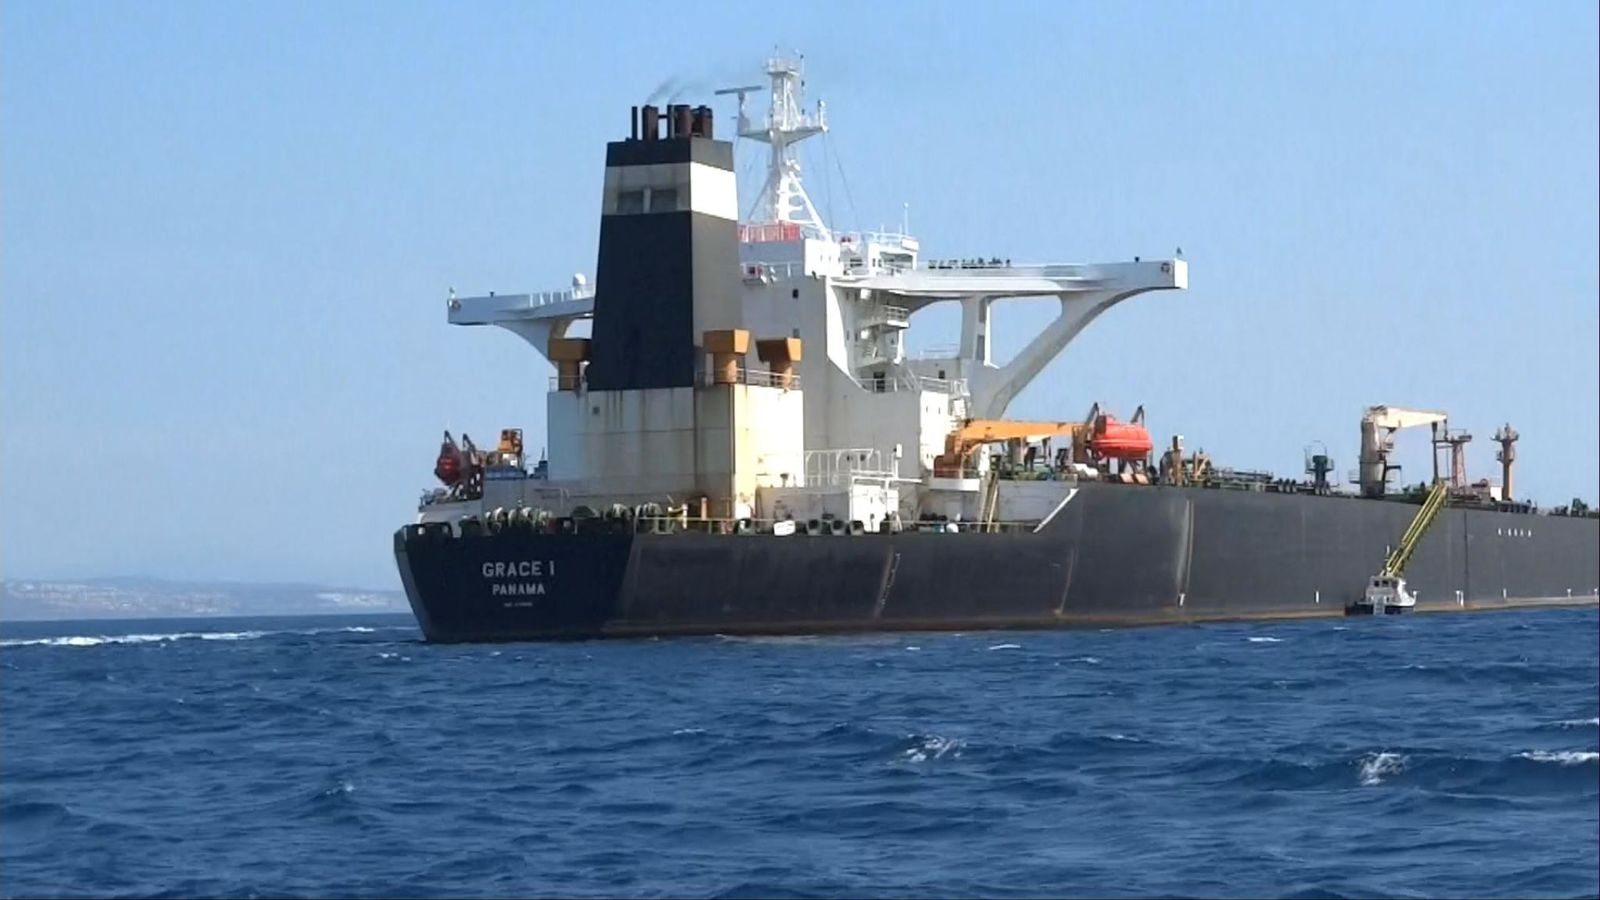 Royal Marines have boarded an oil tanker on its way to Syria thought to be breaching EU sanctions,